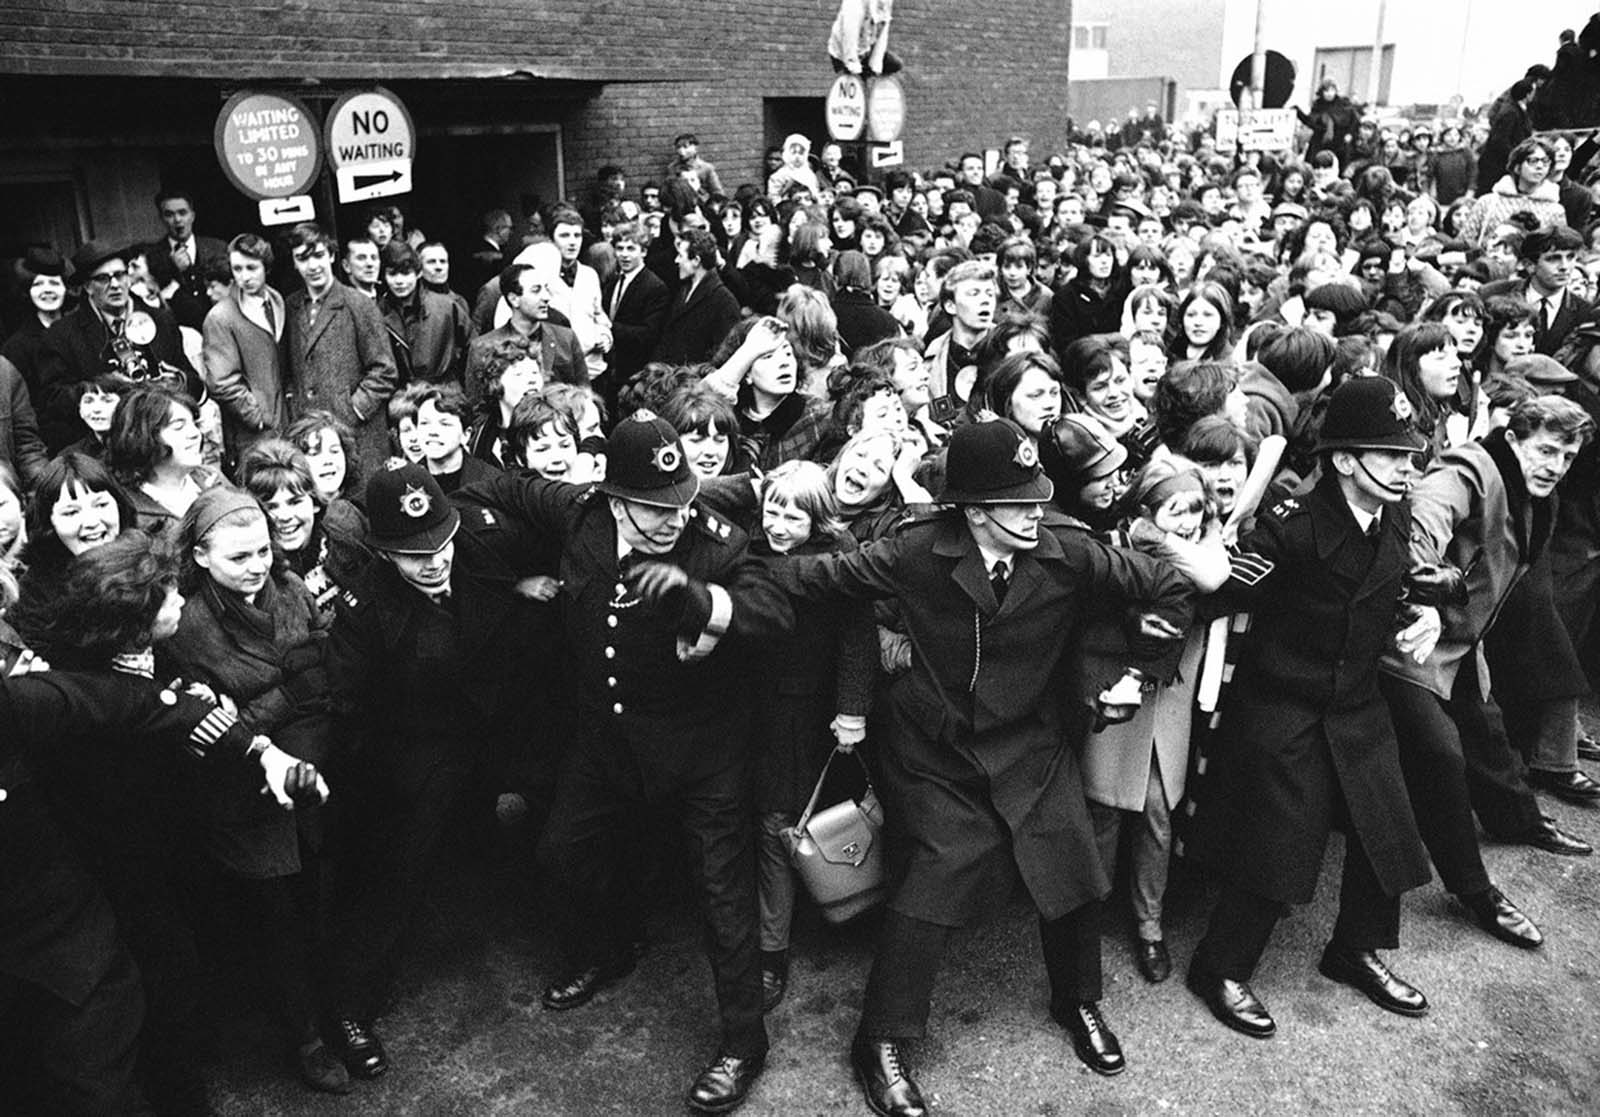 Policemen good-humoredly control screaming Beatles fans as the Liverpool pop group were welcomed by a group of more than 5,000 on their arrival at London Airport, on February 22, 1964, on their return from America.